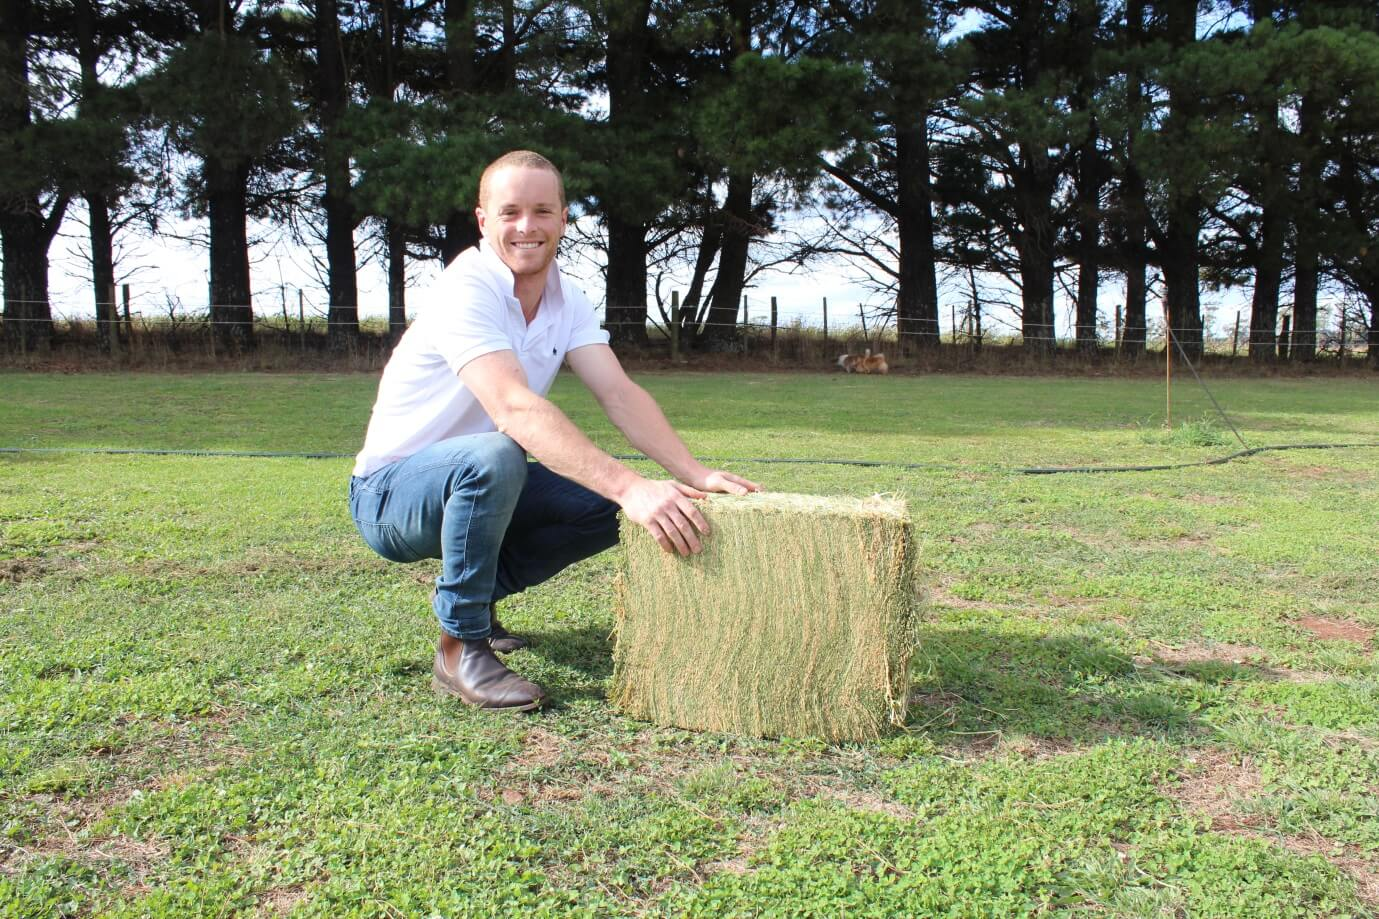 Lucerne Hay For Sale - Compact Bale